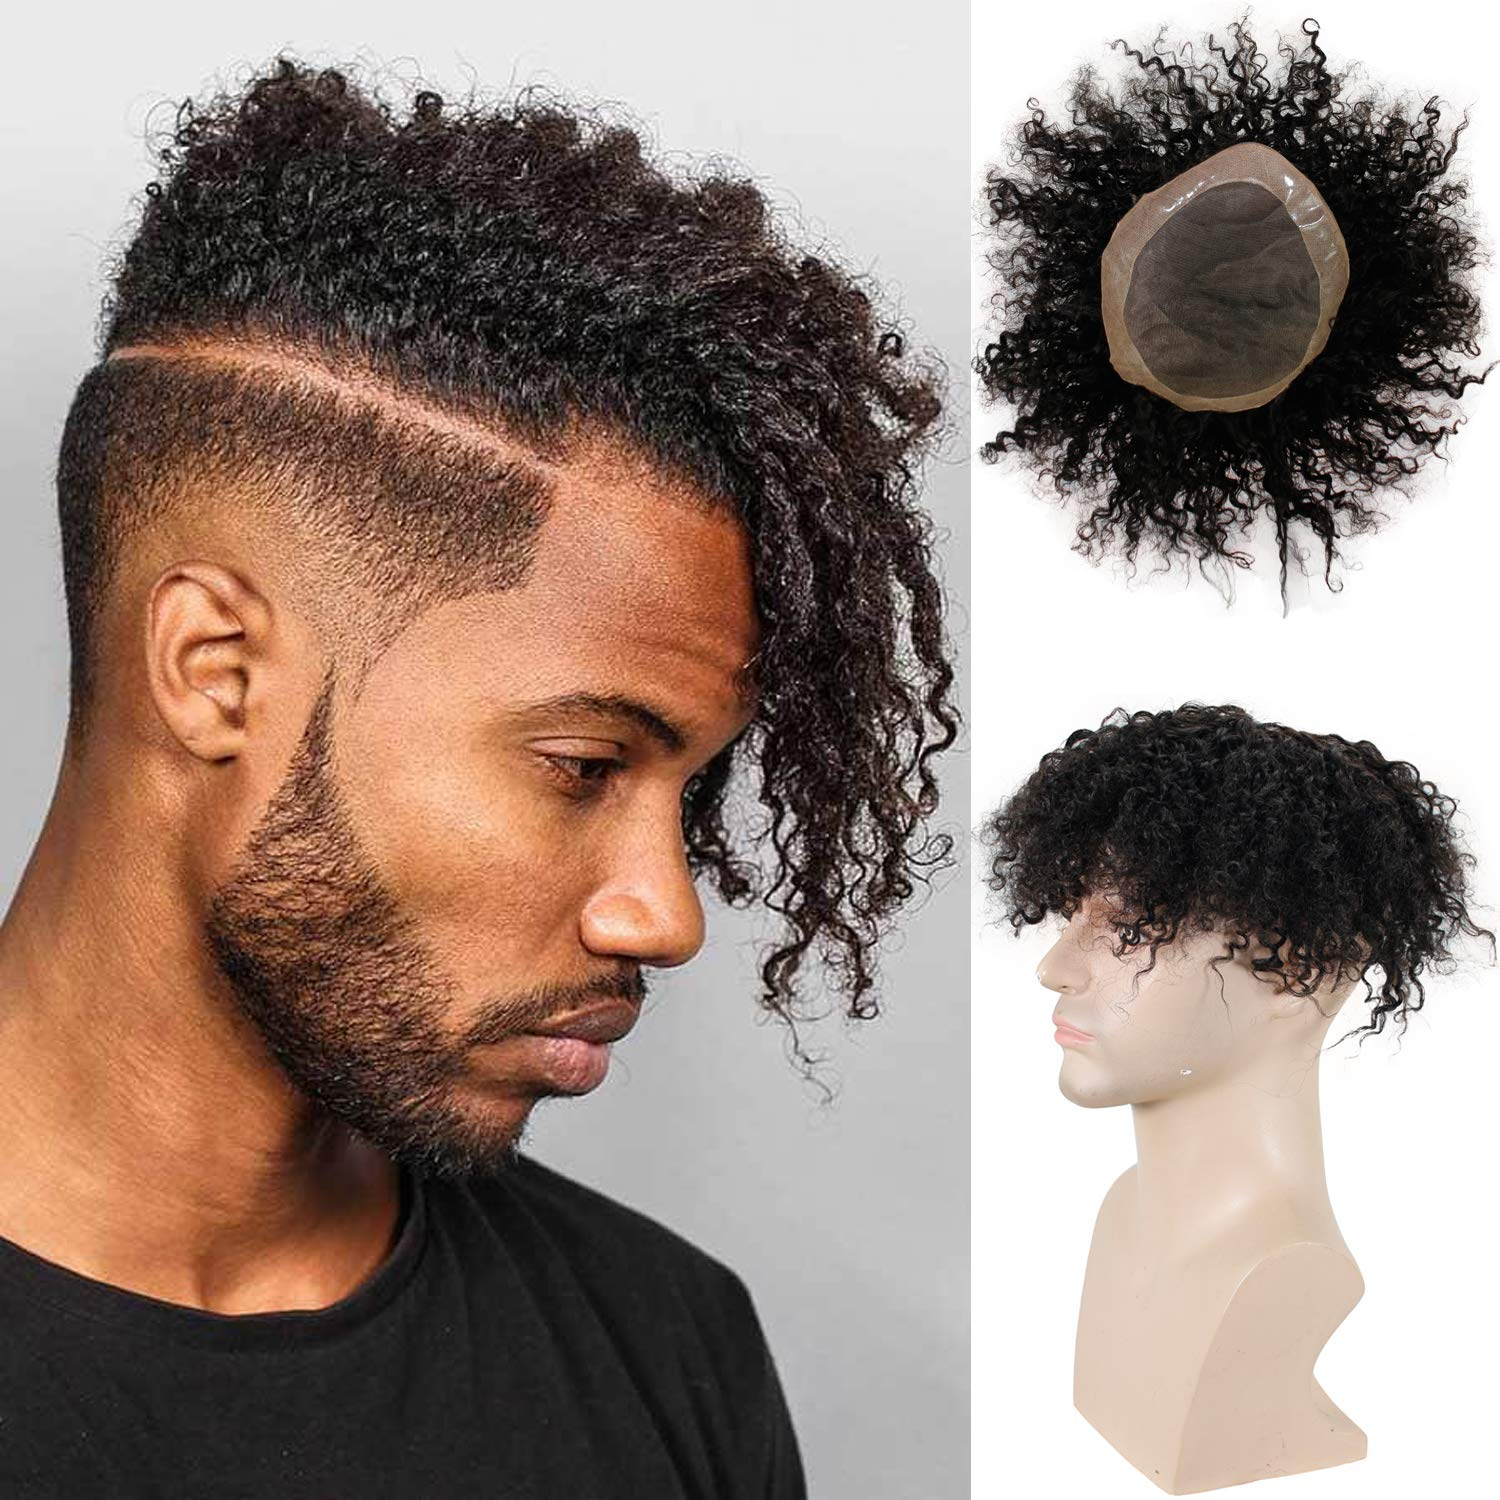 Kinky Curly Men's Toupee for Black Man 100%Human Hair Mono Lace Replacement African American Wig 10x